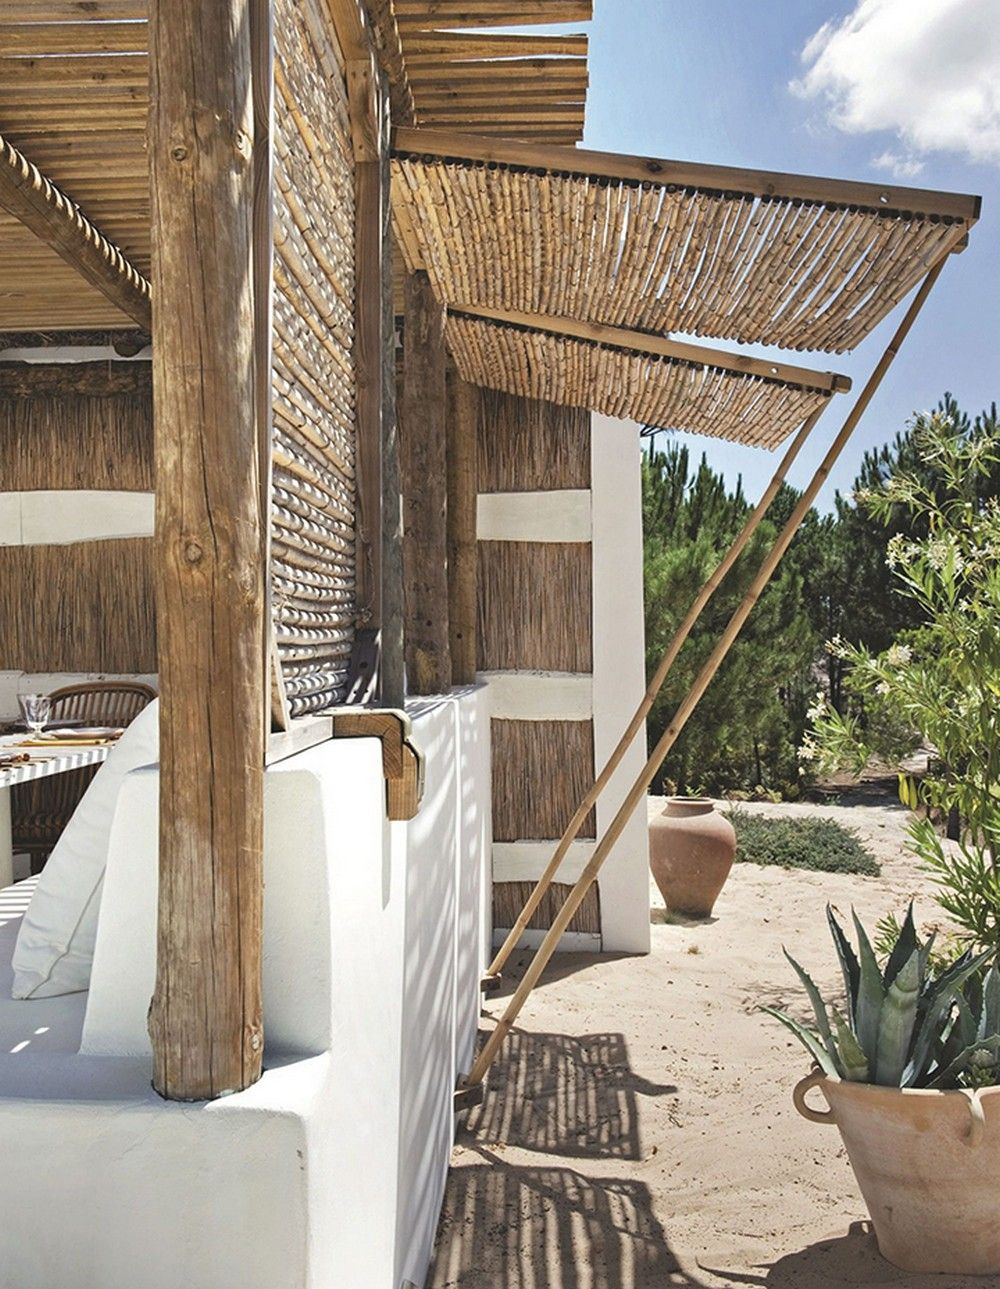 Hausfrontdesign in rajasthan  perfect beach cabin decoration ideas  ideas beaches and cabin